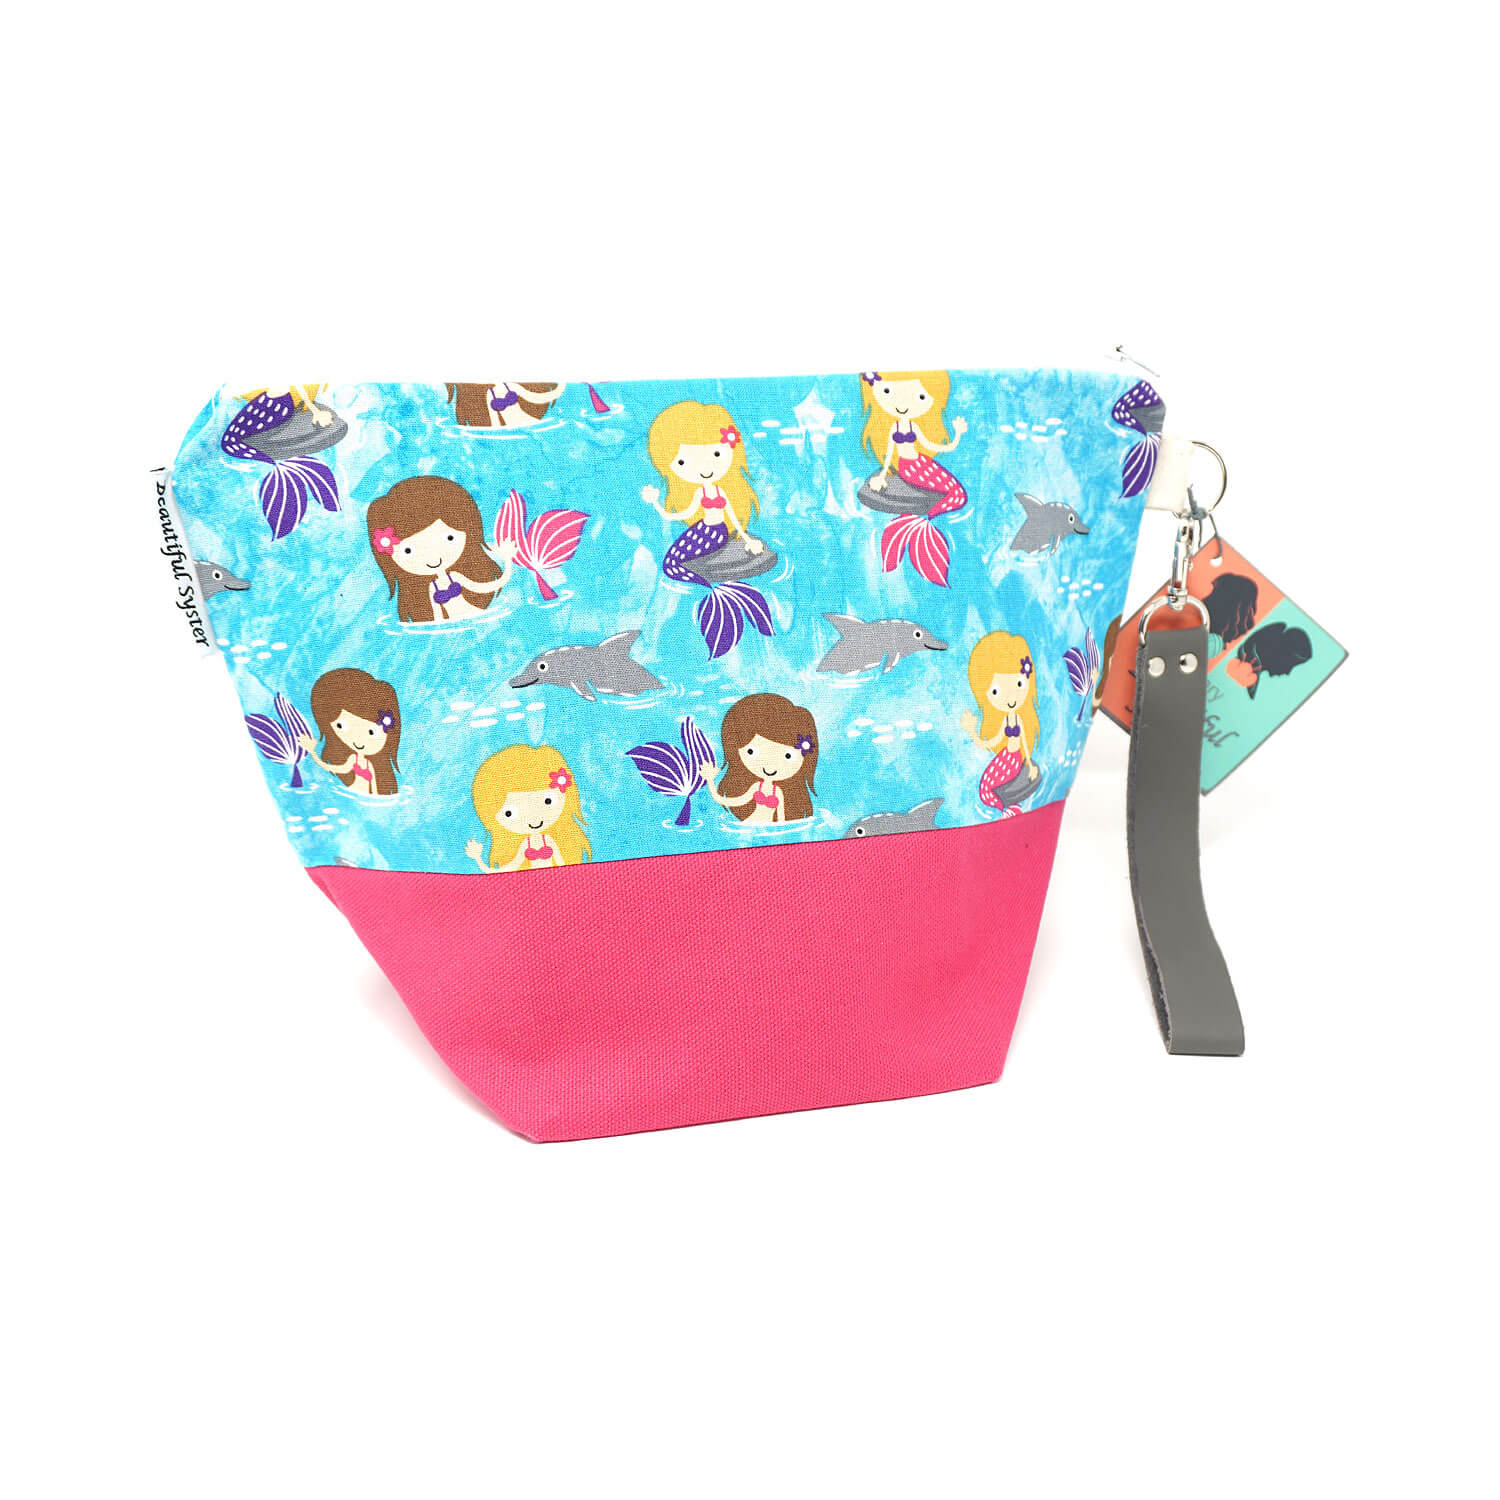 Beautiful Syster Hillary zipped project bag with mermaids fabric. Bag is shown standing up.